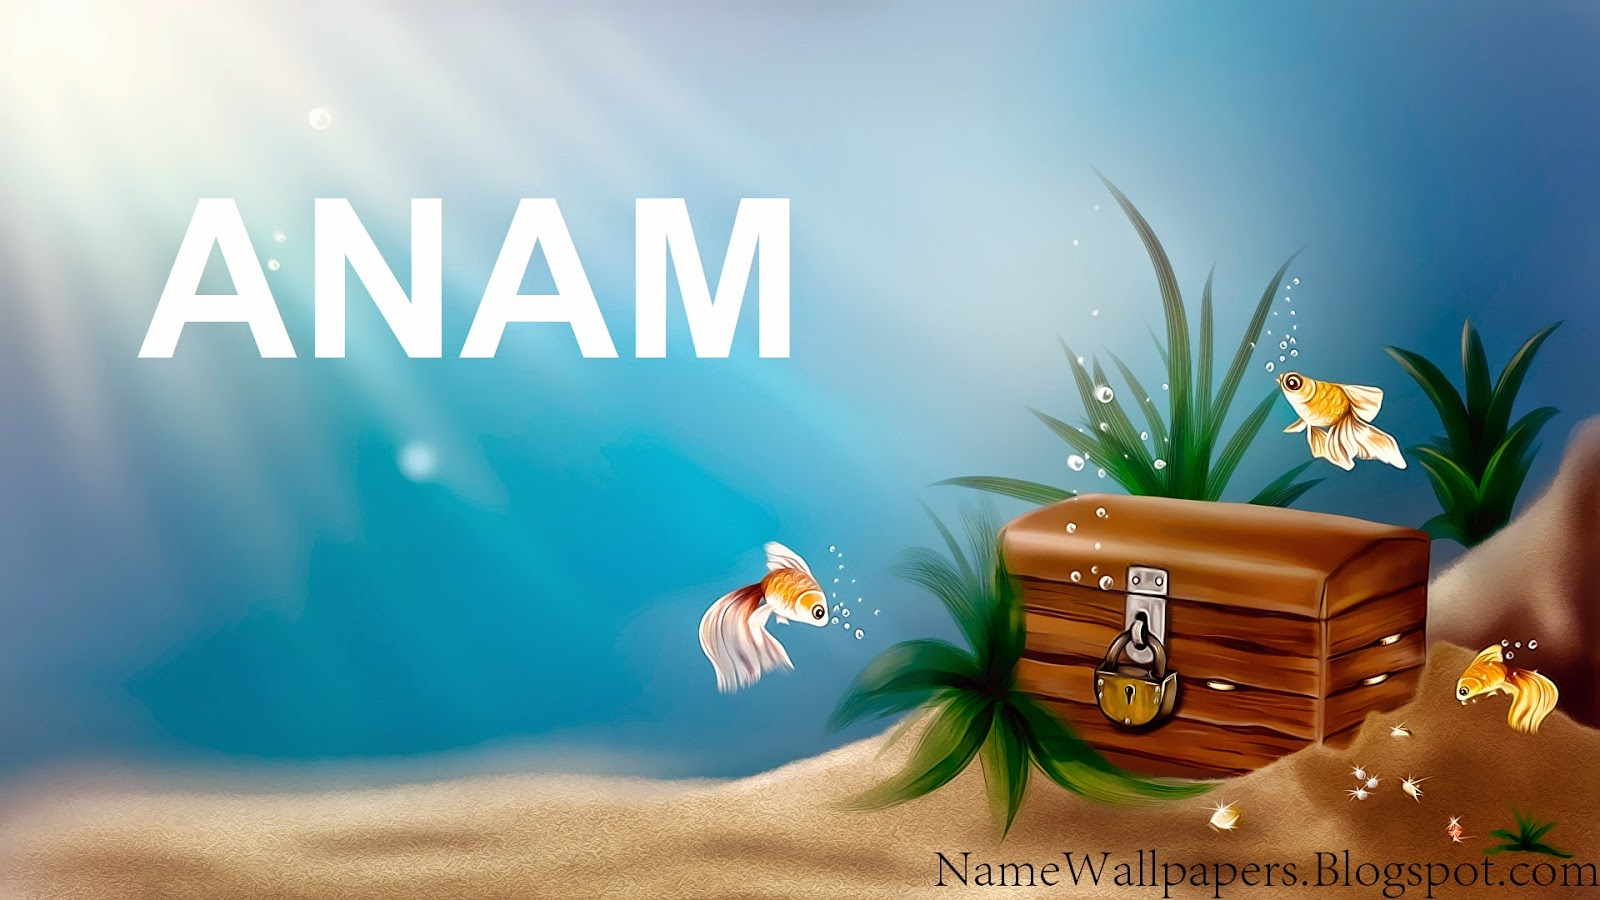 Anam   Name ...H E B Meaning